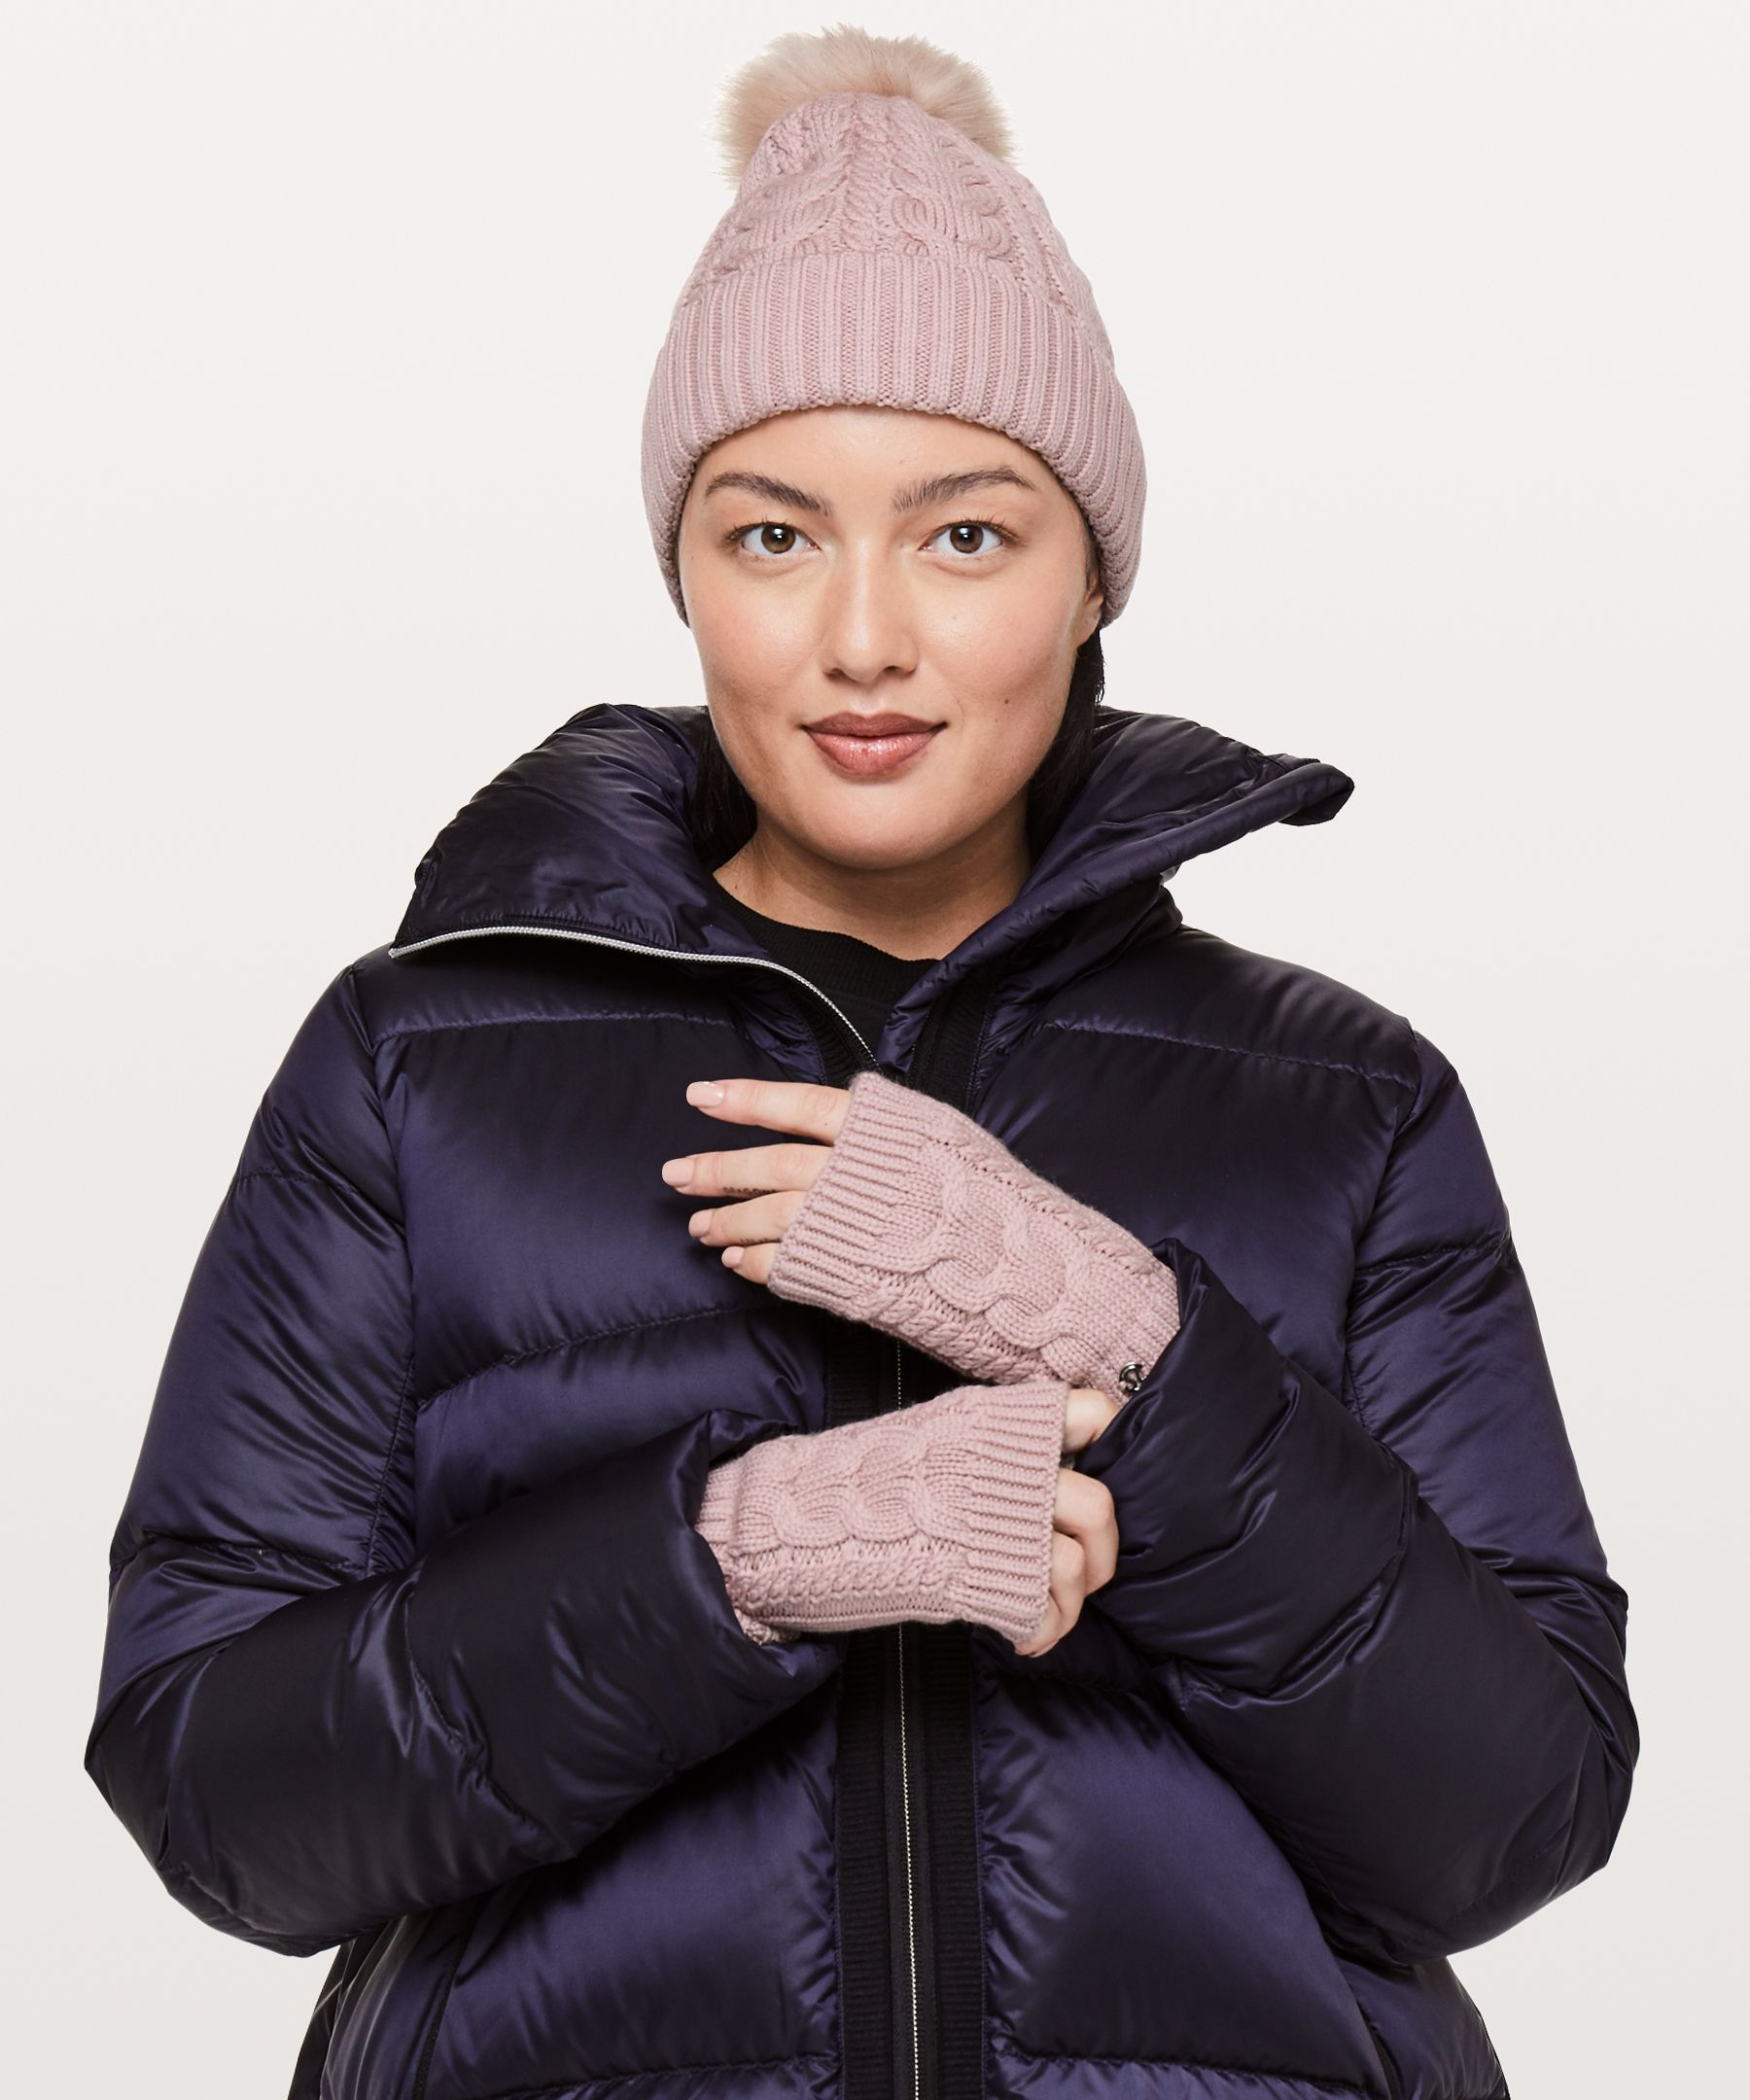 d2e9ac91562fa Twisted Bliss Fingerless Gloves - Keep your hands warm—and your fingers  free to text—in these cable-knit fingerless gloves.